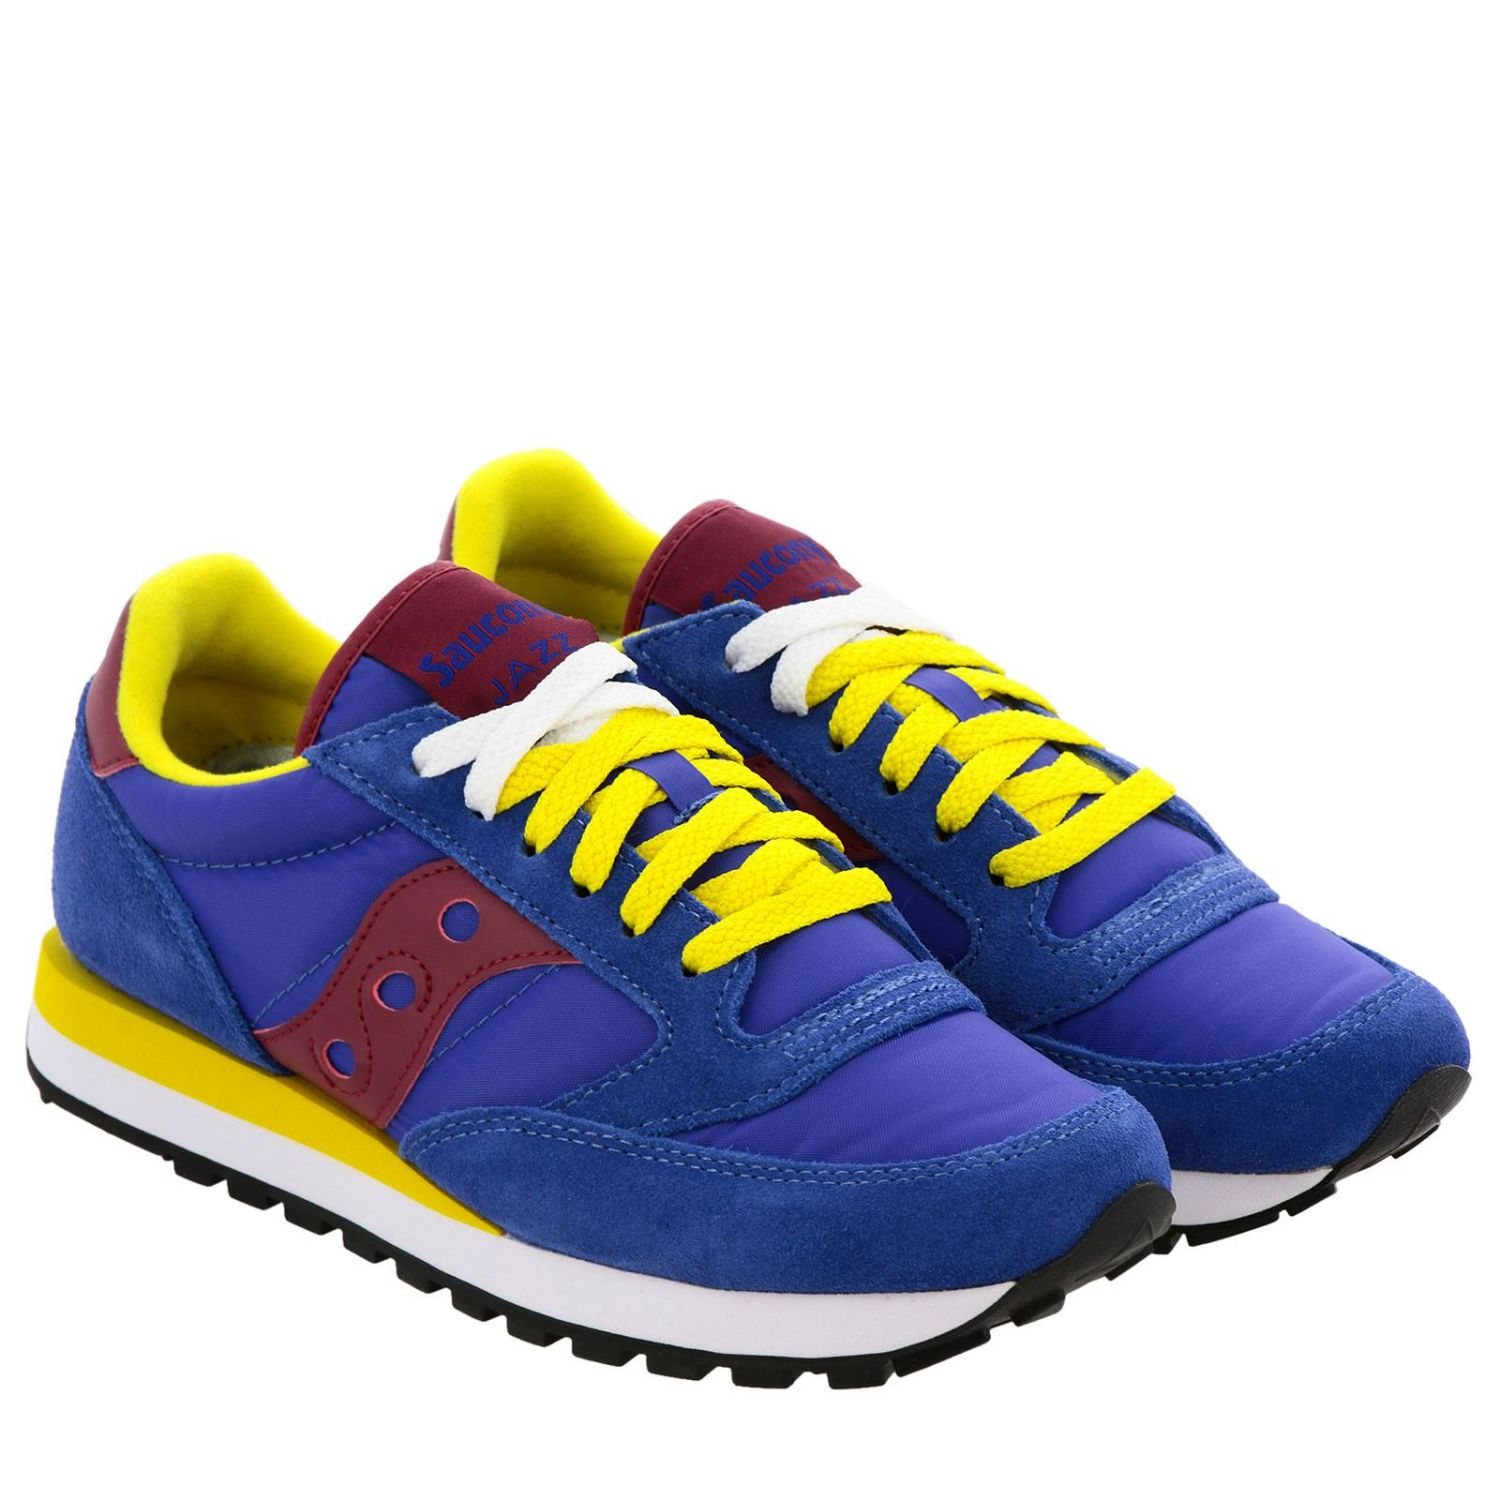 Sneakers Jazz Original Men Saucony in pelle scamosciata pelle liscia e nylon con intersuola Eva blue 2